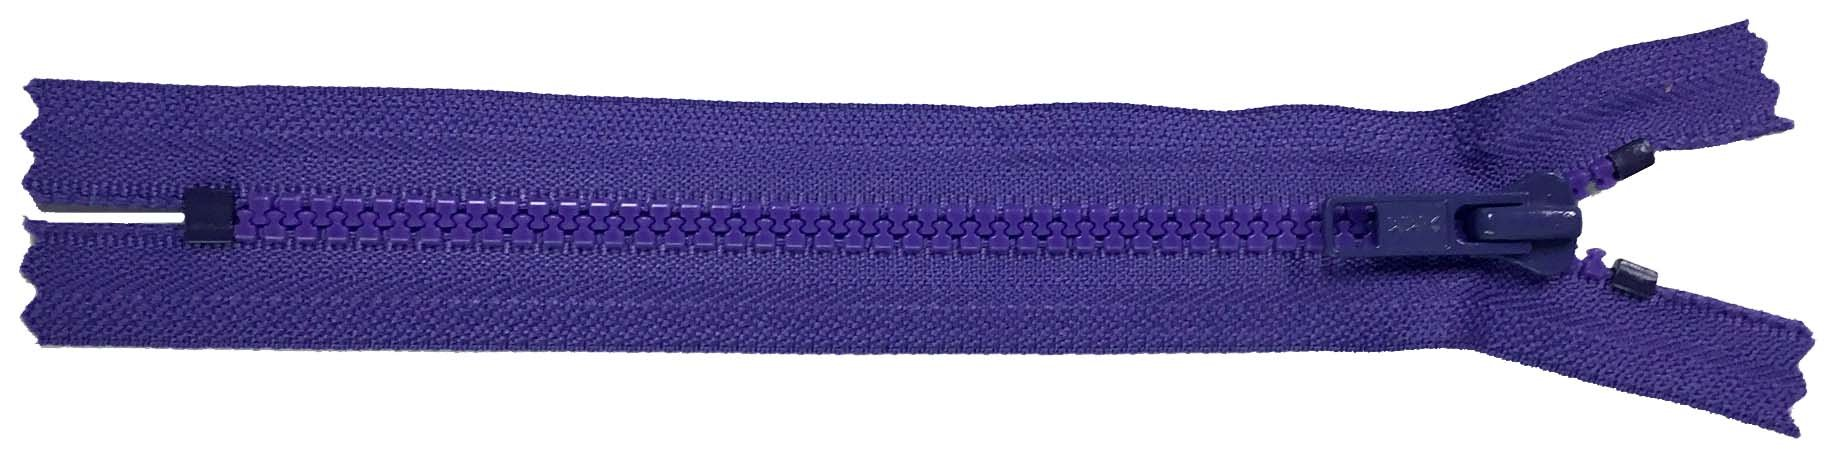 YKK #5 MT Non-Separating Zipper Old Style - 7 inch - Purple